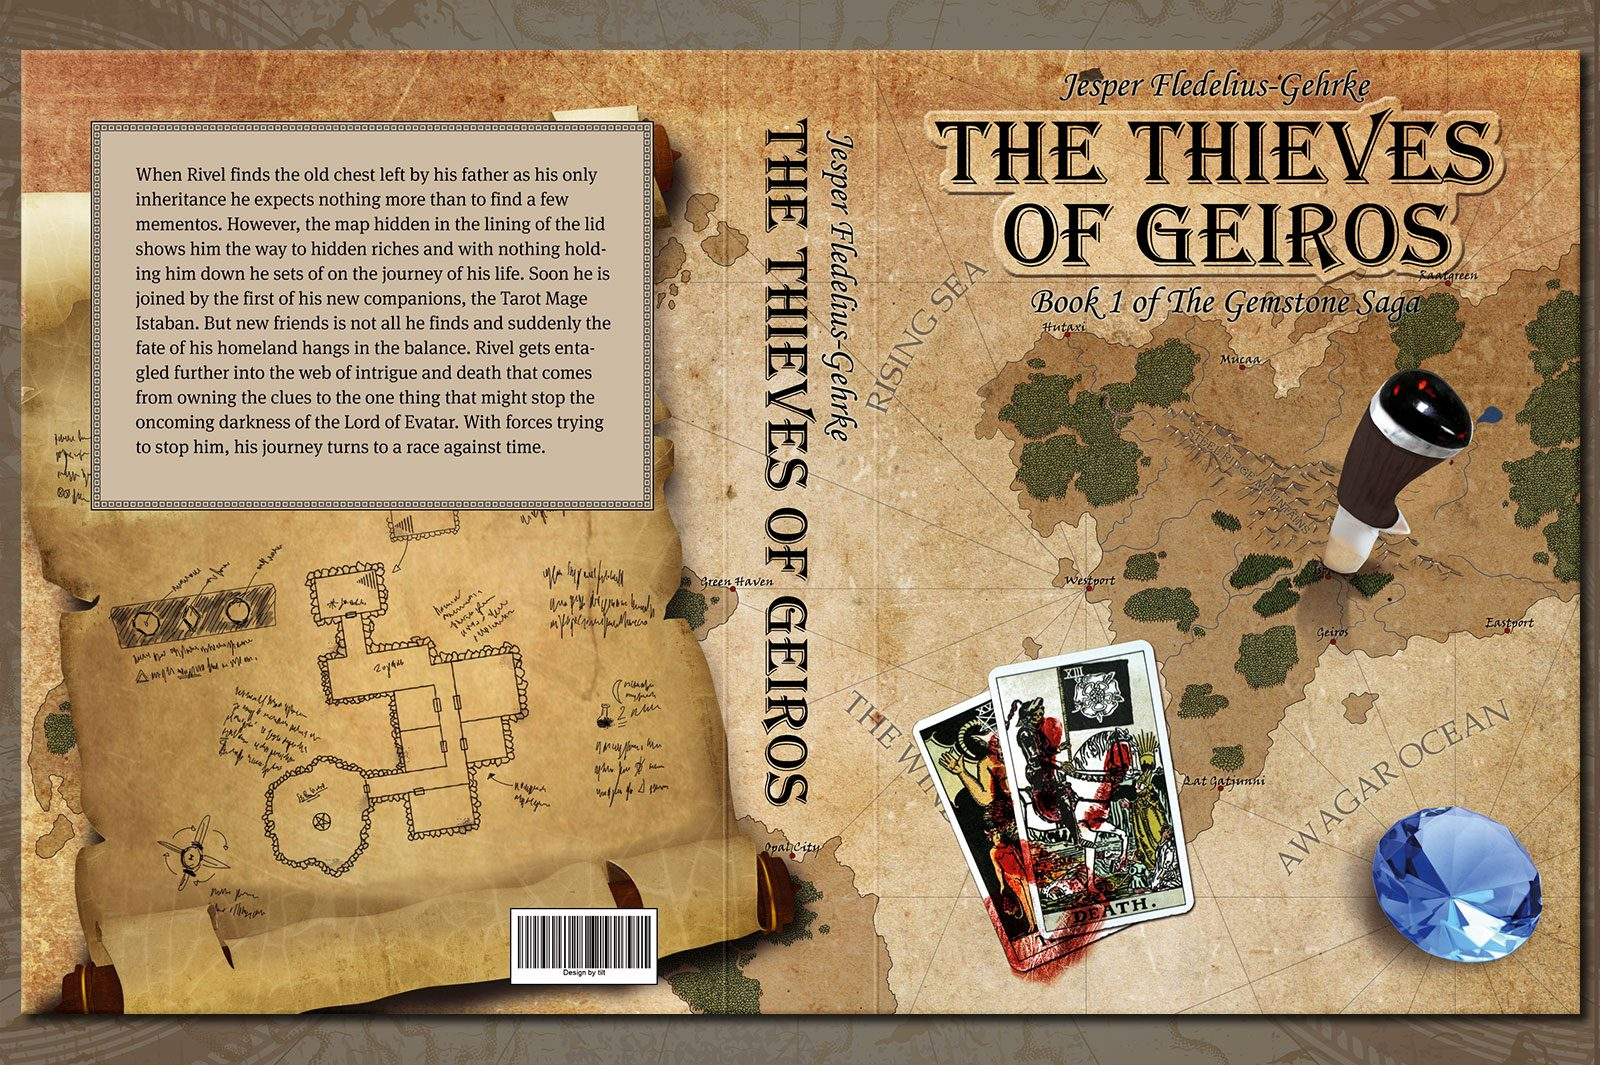 Map for book cover